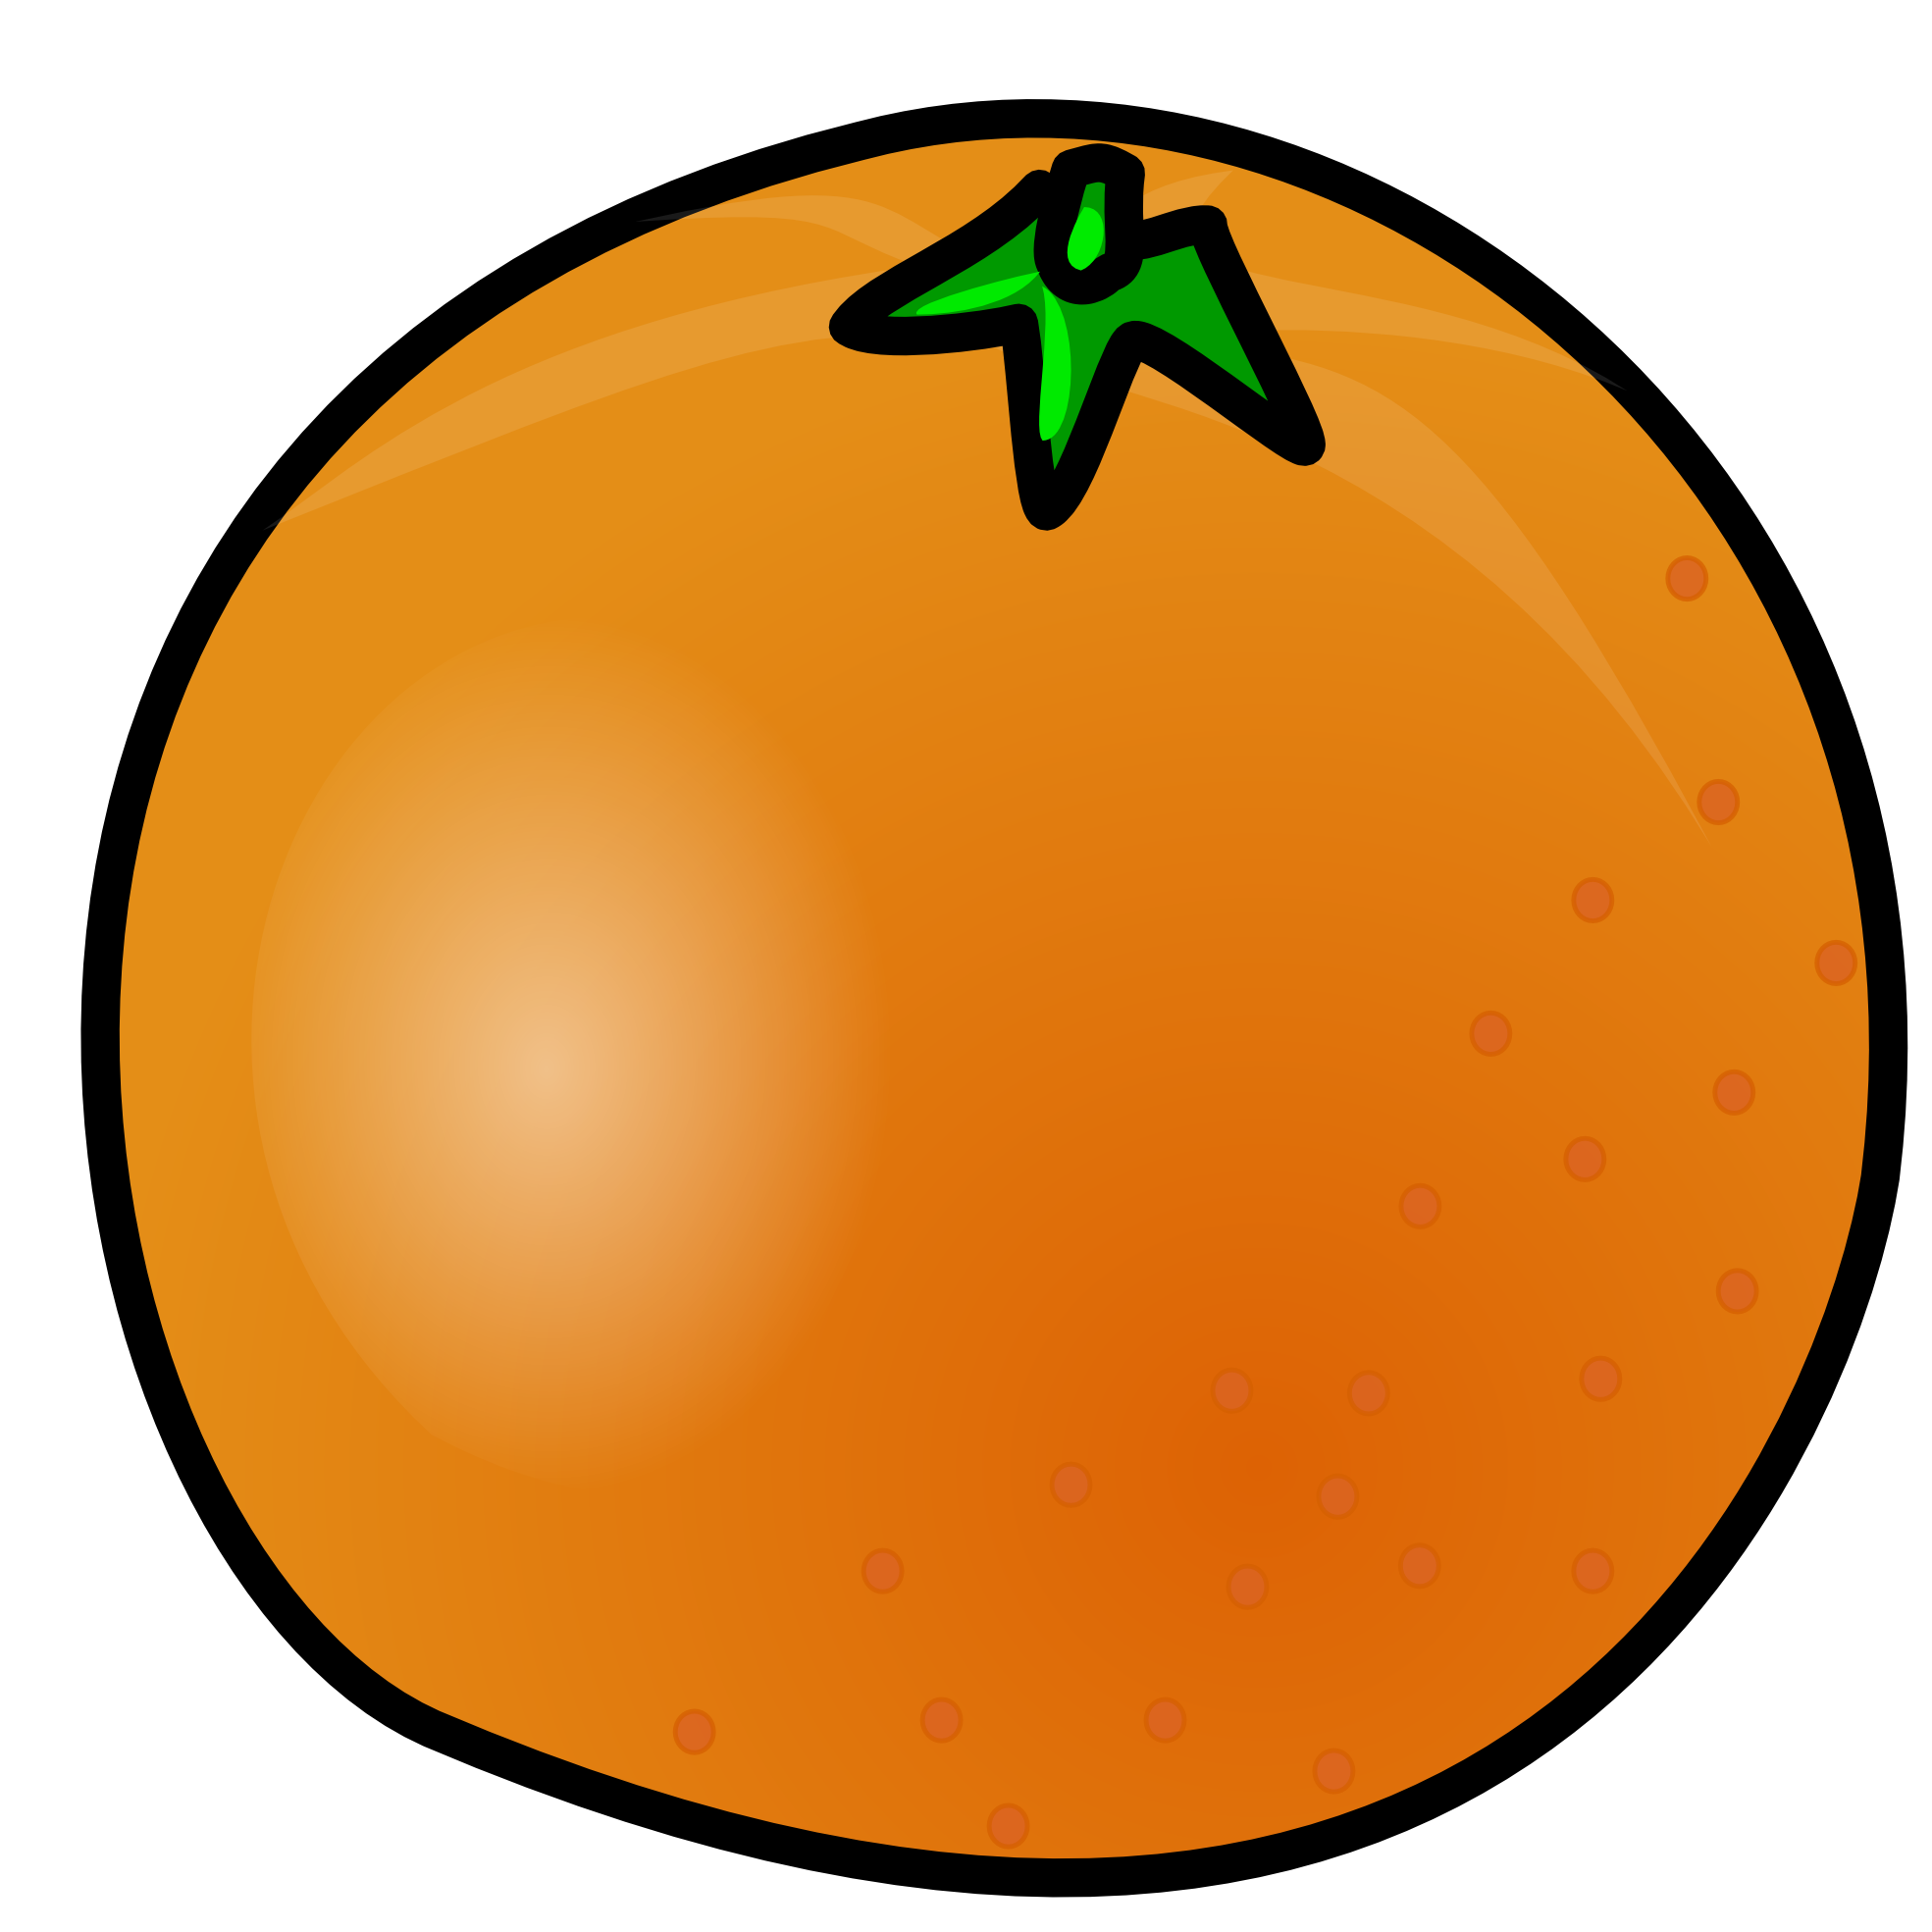 graphic royalty free Orange Fruit Clipart printable